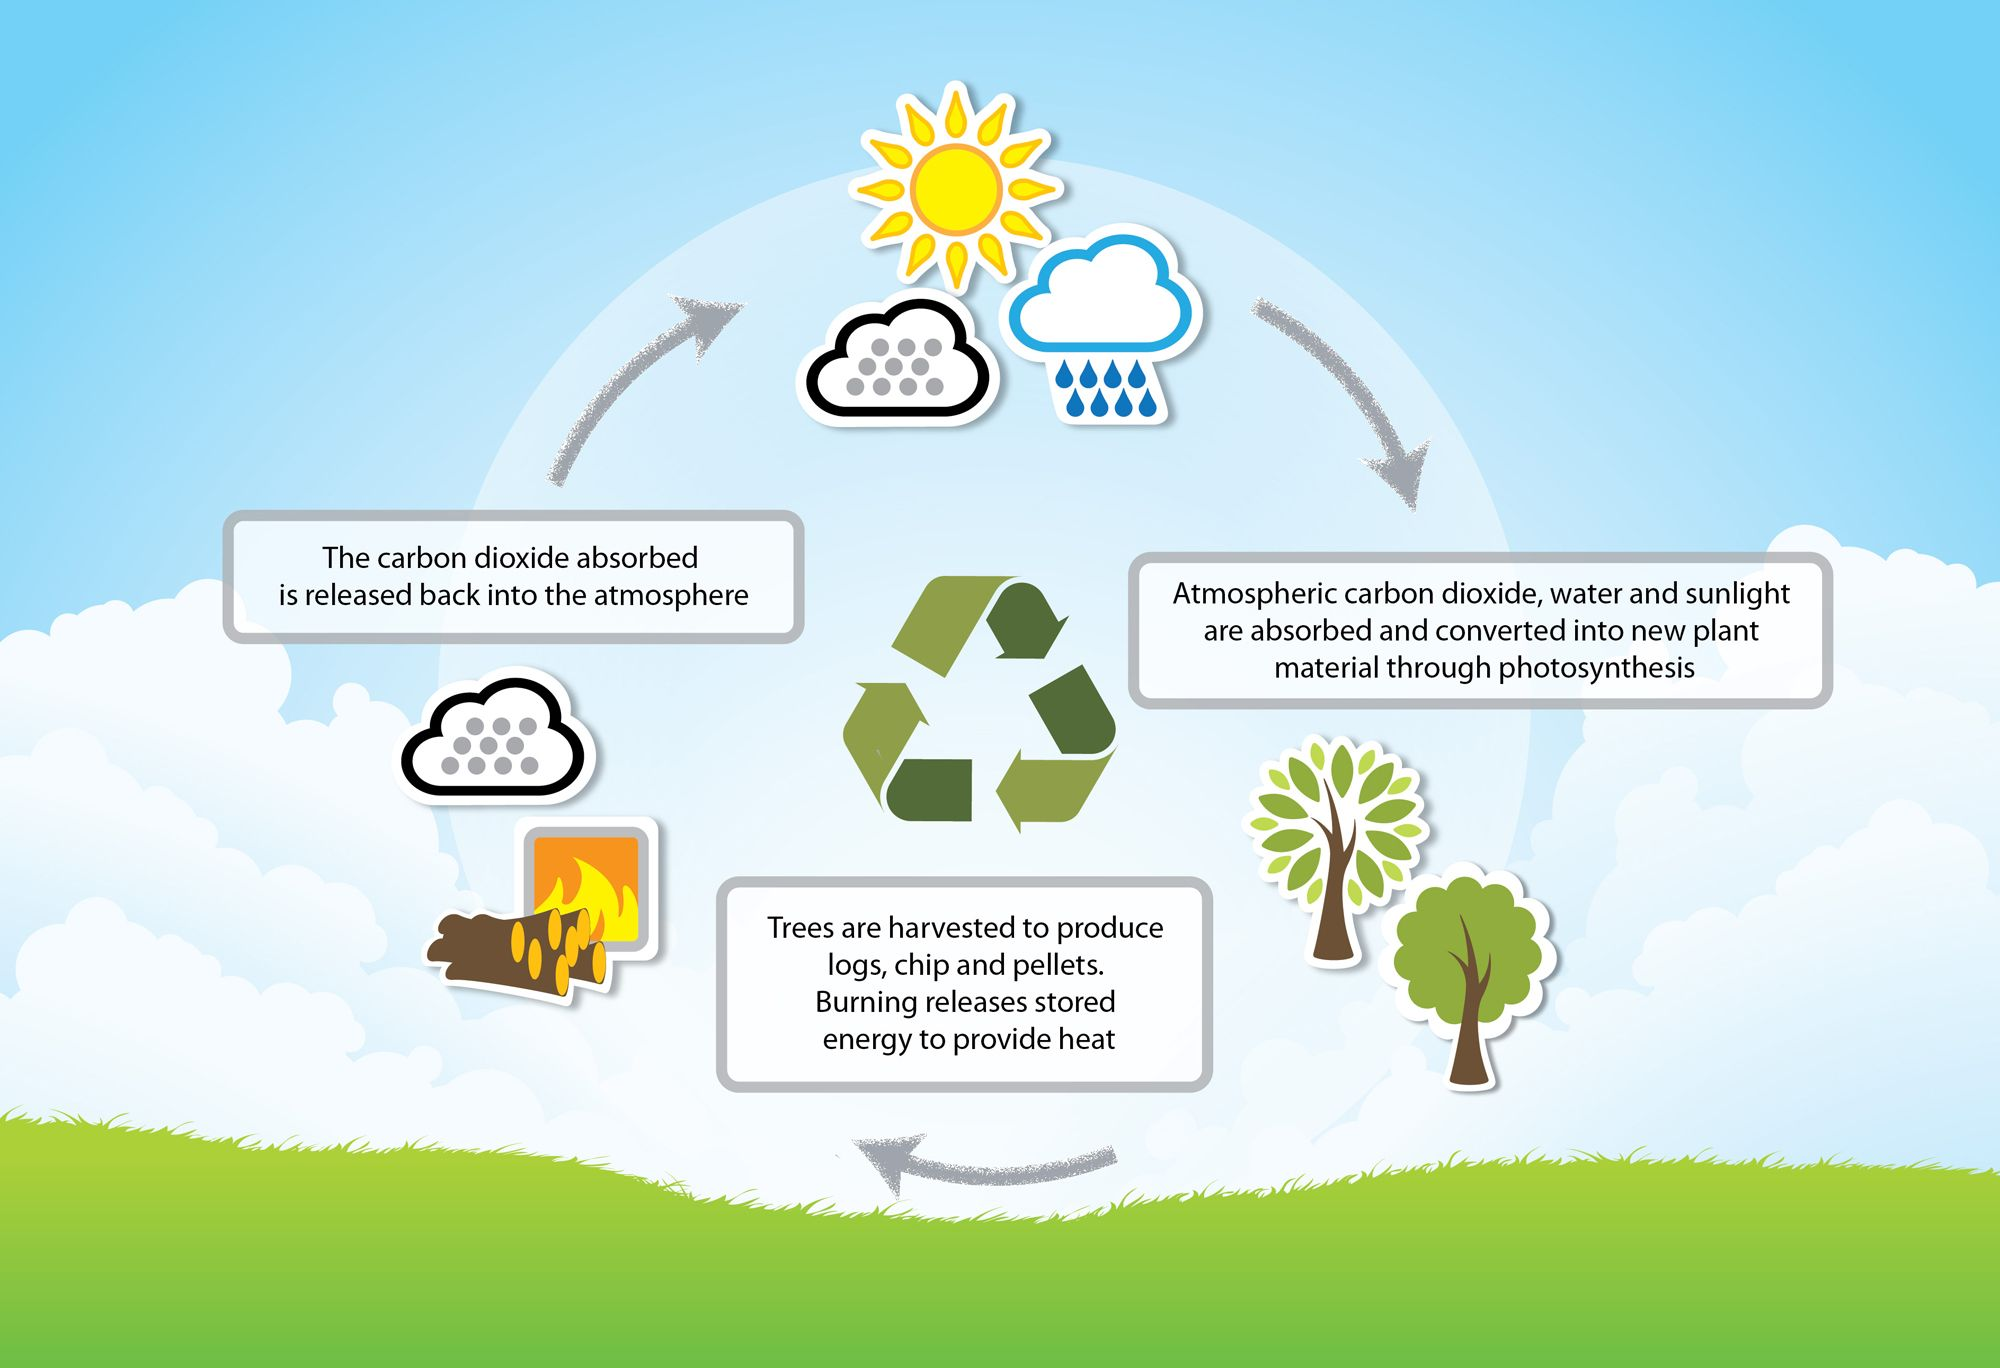 Biomass A Renewable Energy Source Or A Danger To The